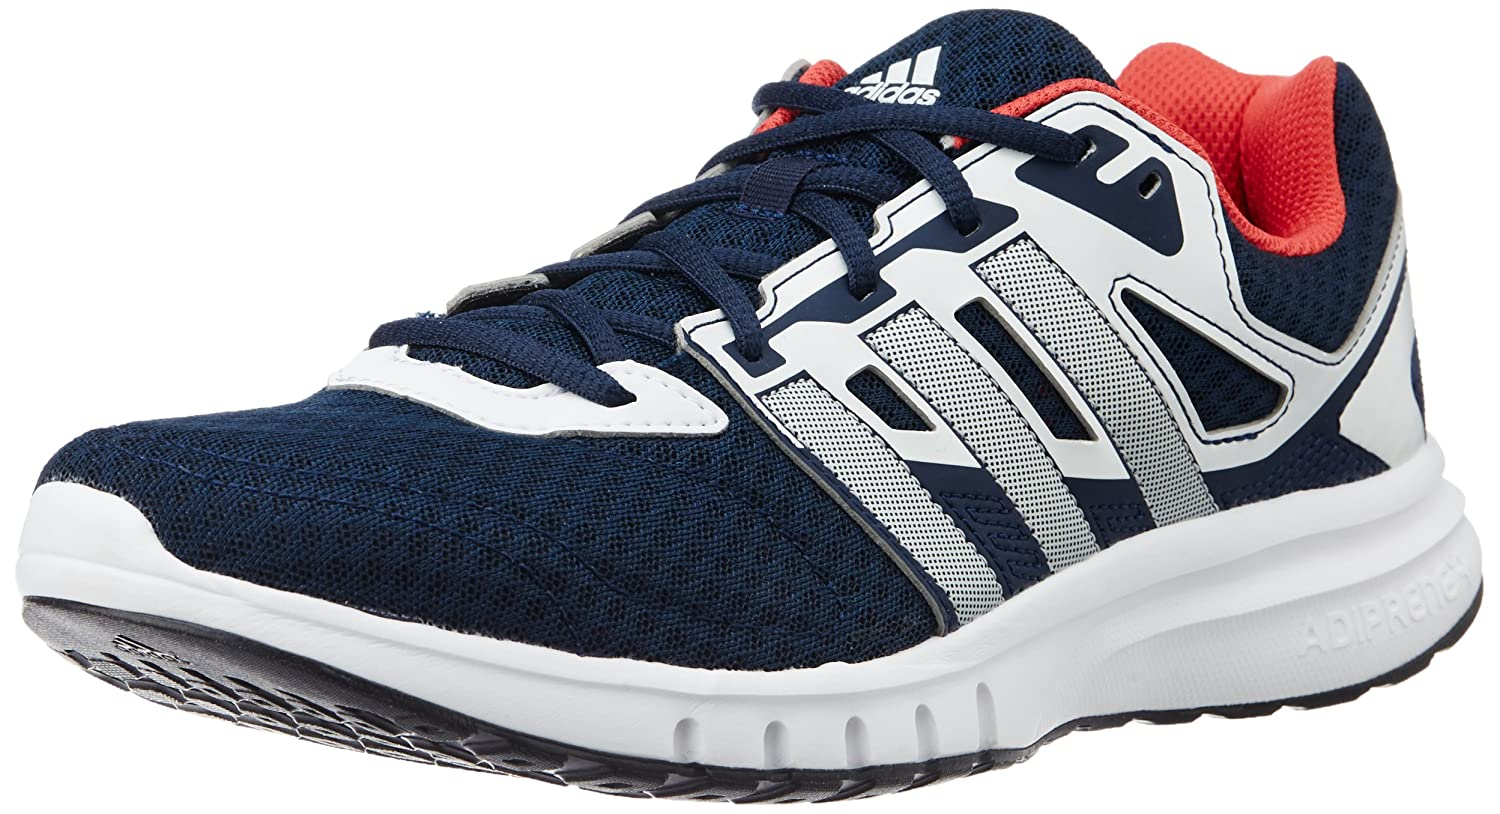 adidas Men's Galaxy 2 Wide M Running Shoes: Buy Online at Low Prices in  India - Amazon.in